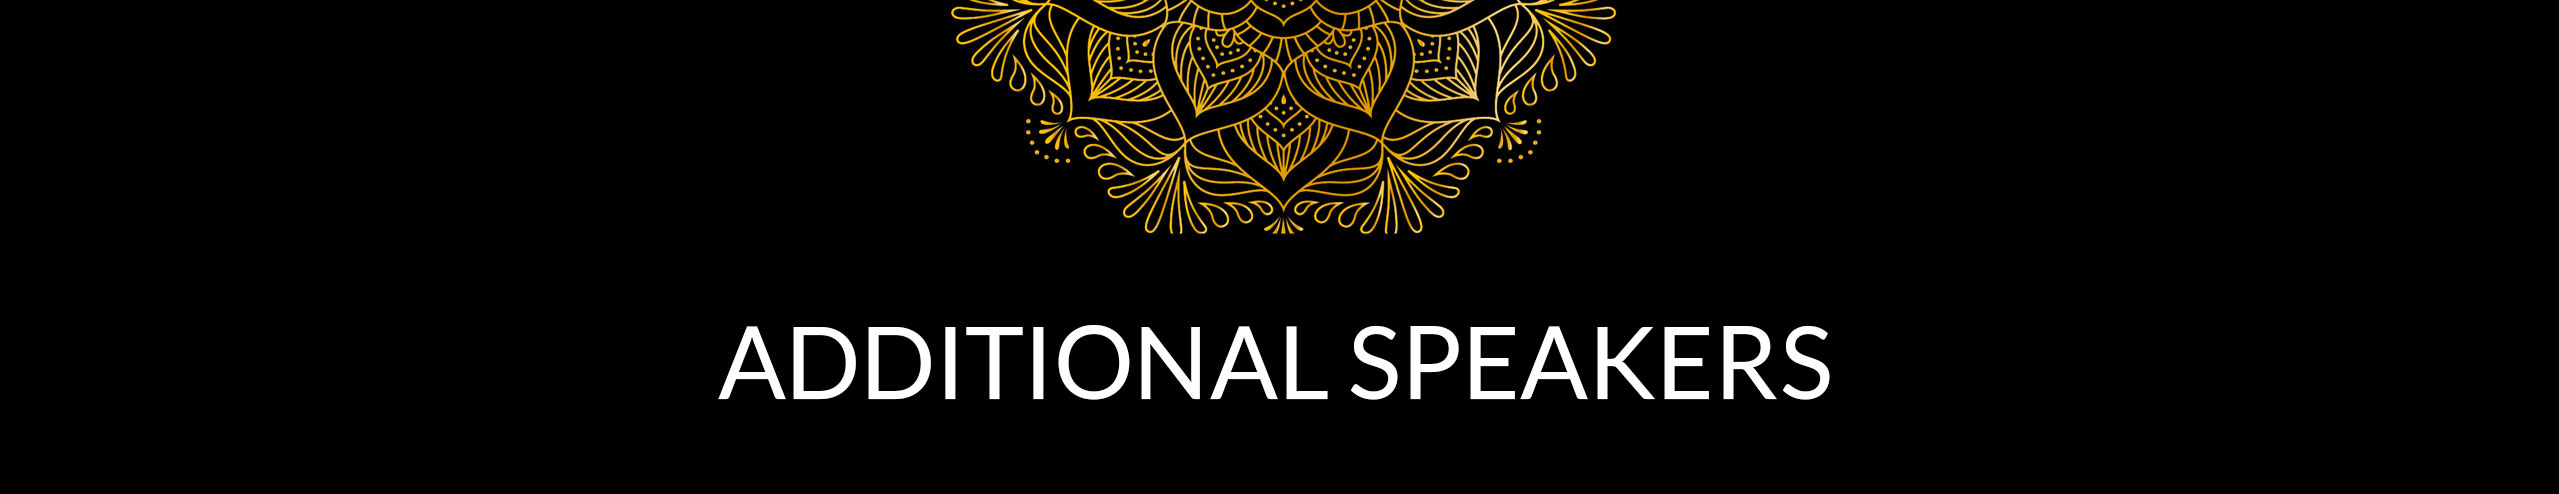 Additional Speakers Header Image